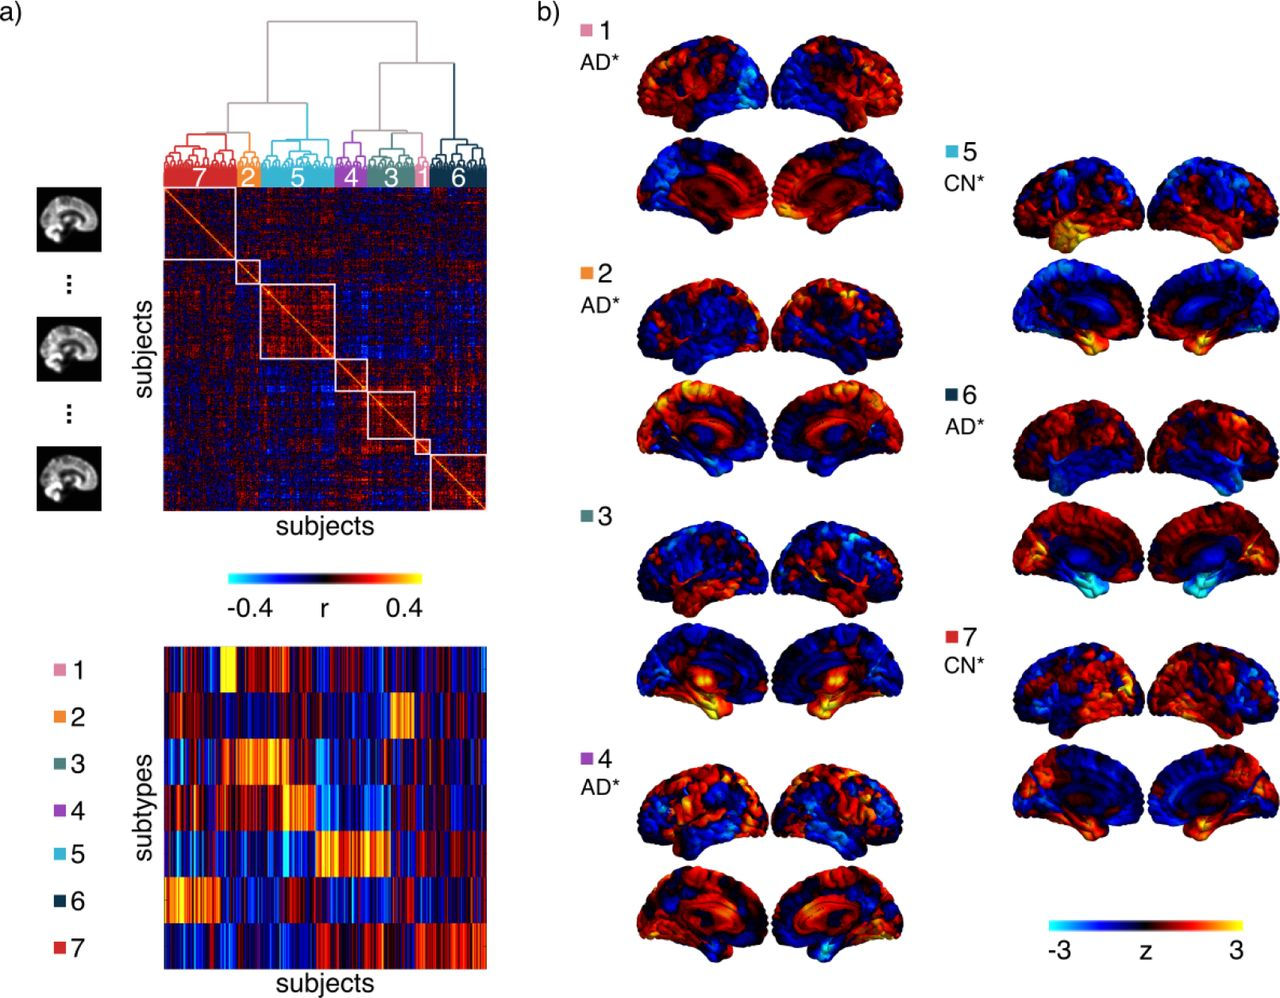 A signature of cognitive deficits and brain atrophy that is